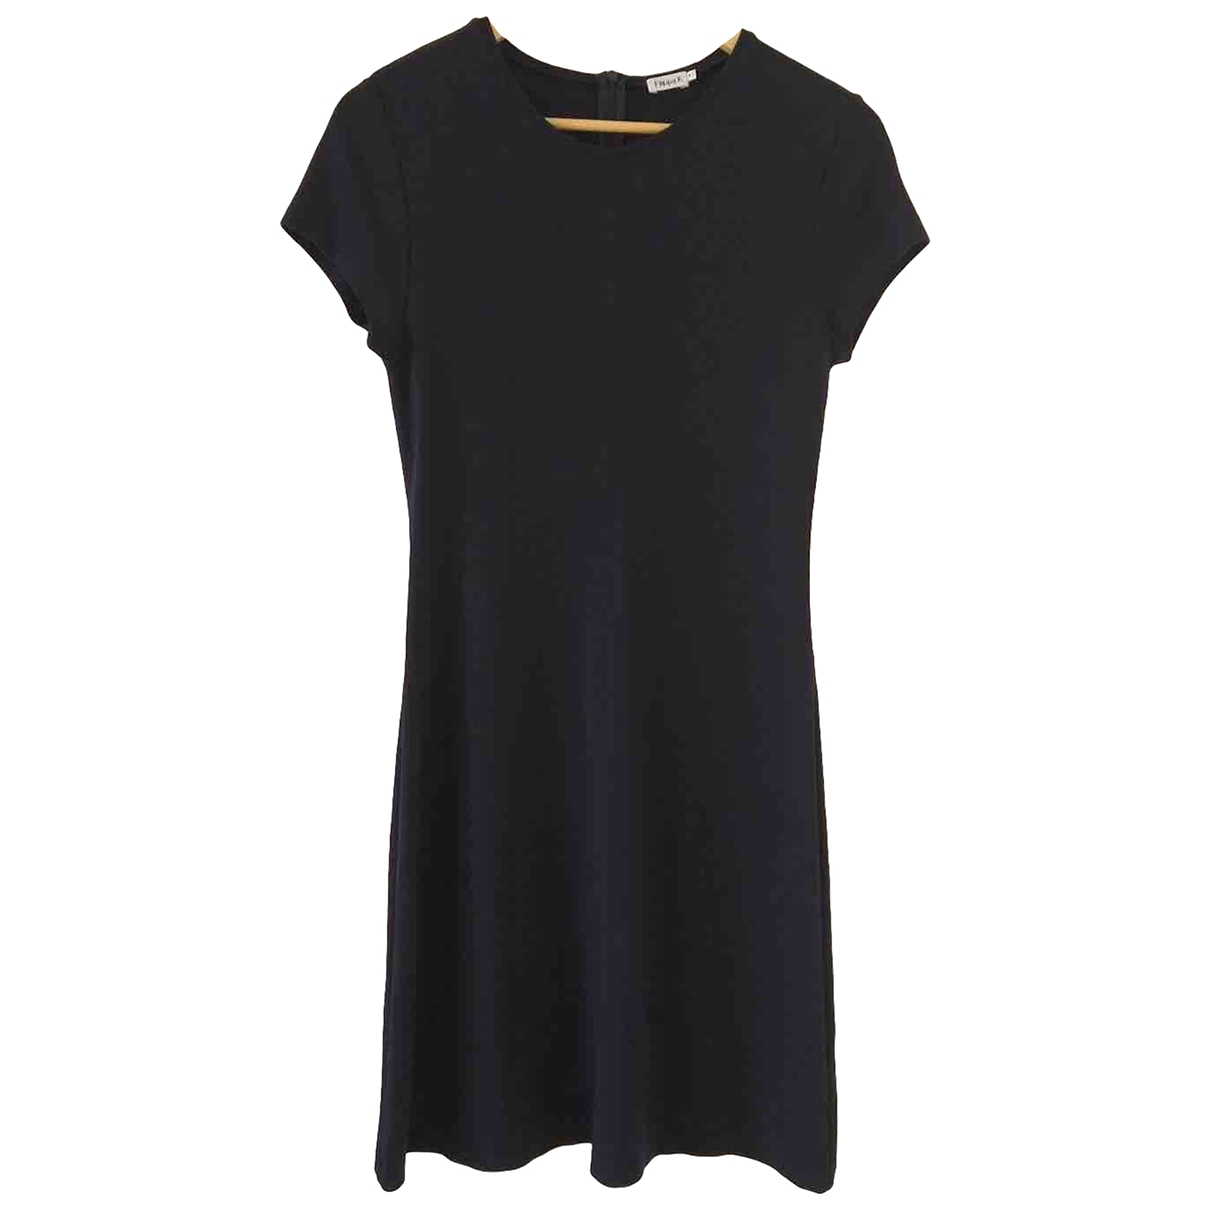 Filippa K \N Navy dress for Women S International